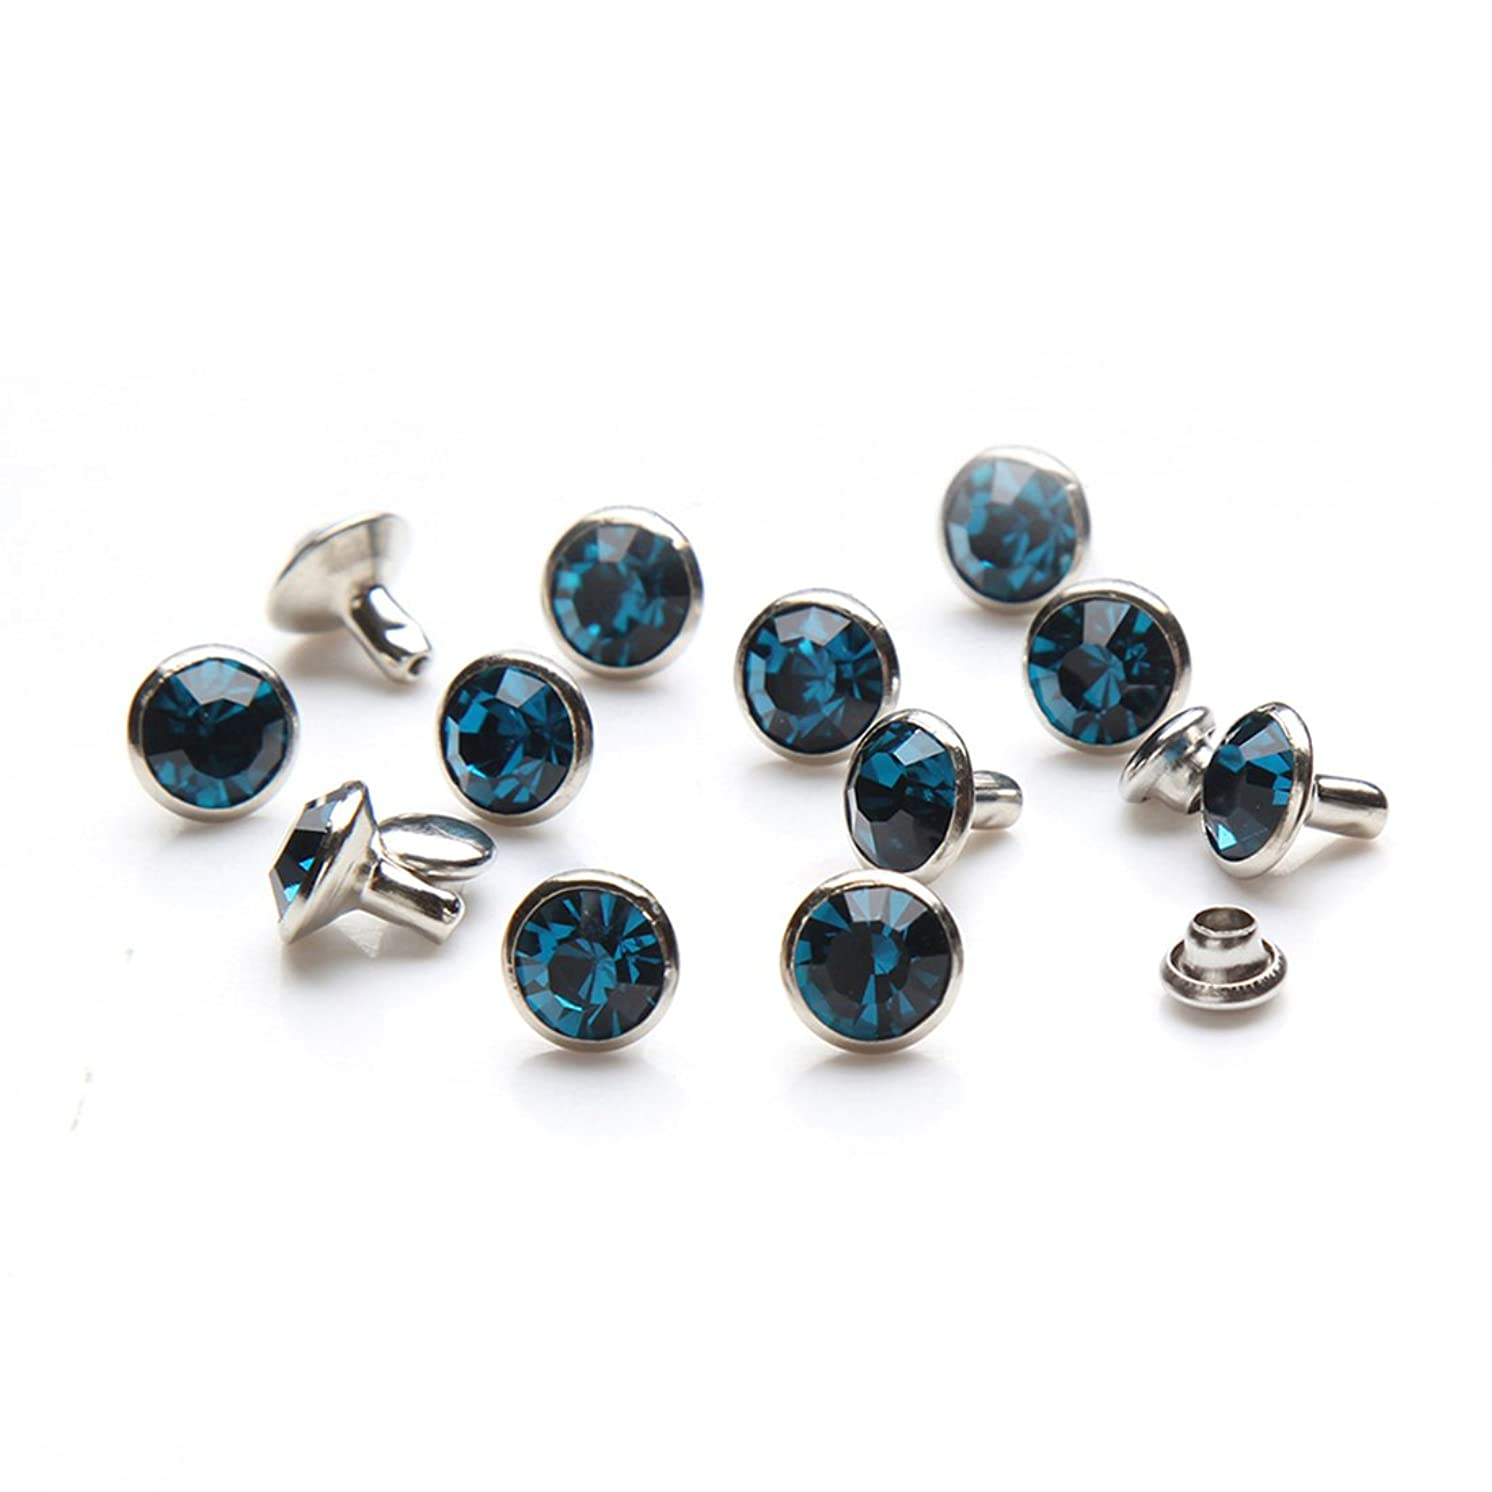 100 Sets Cz Colorful Crystal Rapid Rivets Silver Color Spots Studs Double Cap for DIY Leather-Craft (Indicolite Blue, 6MM)